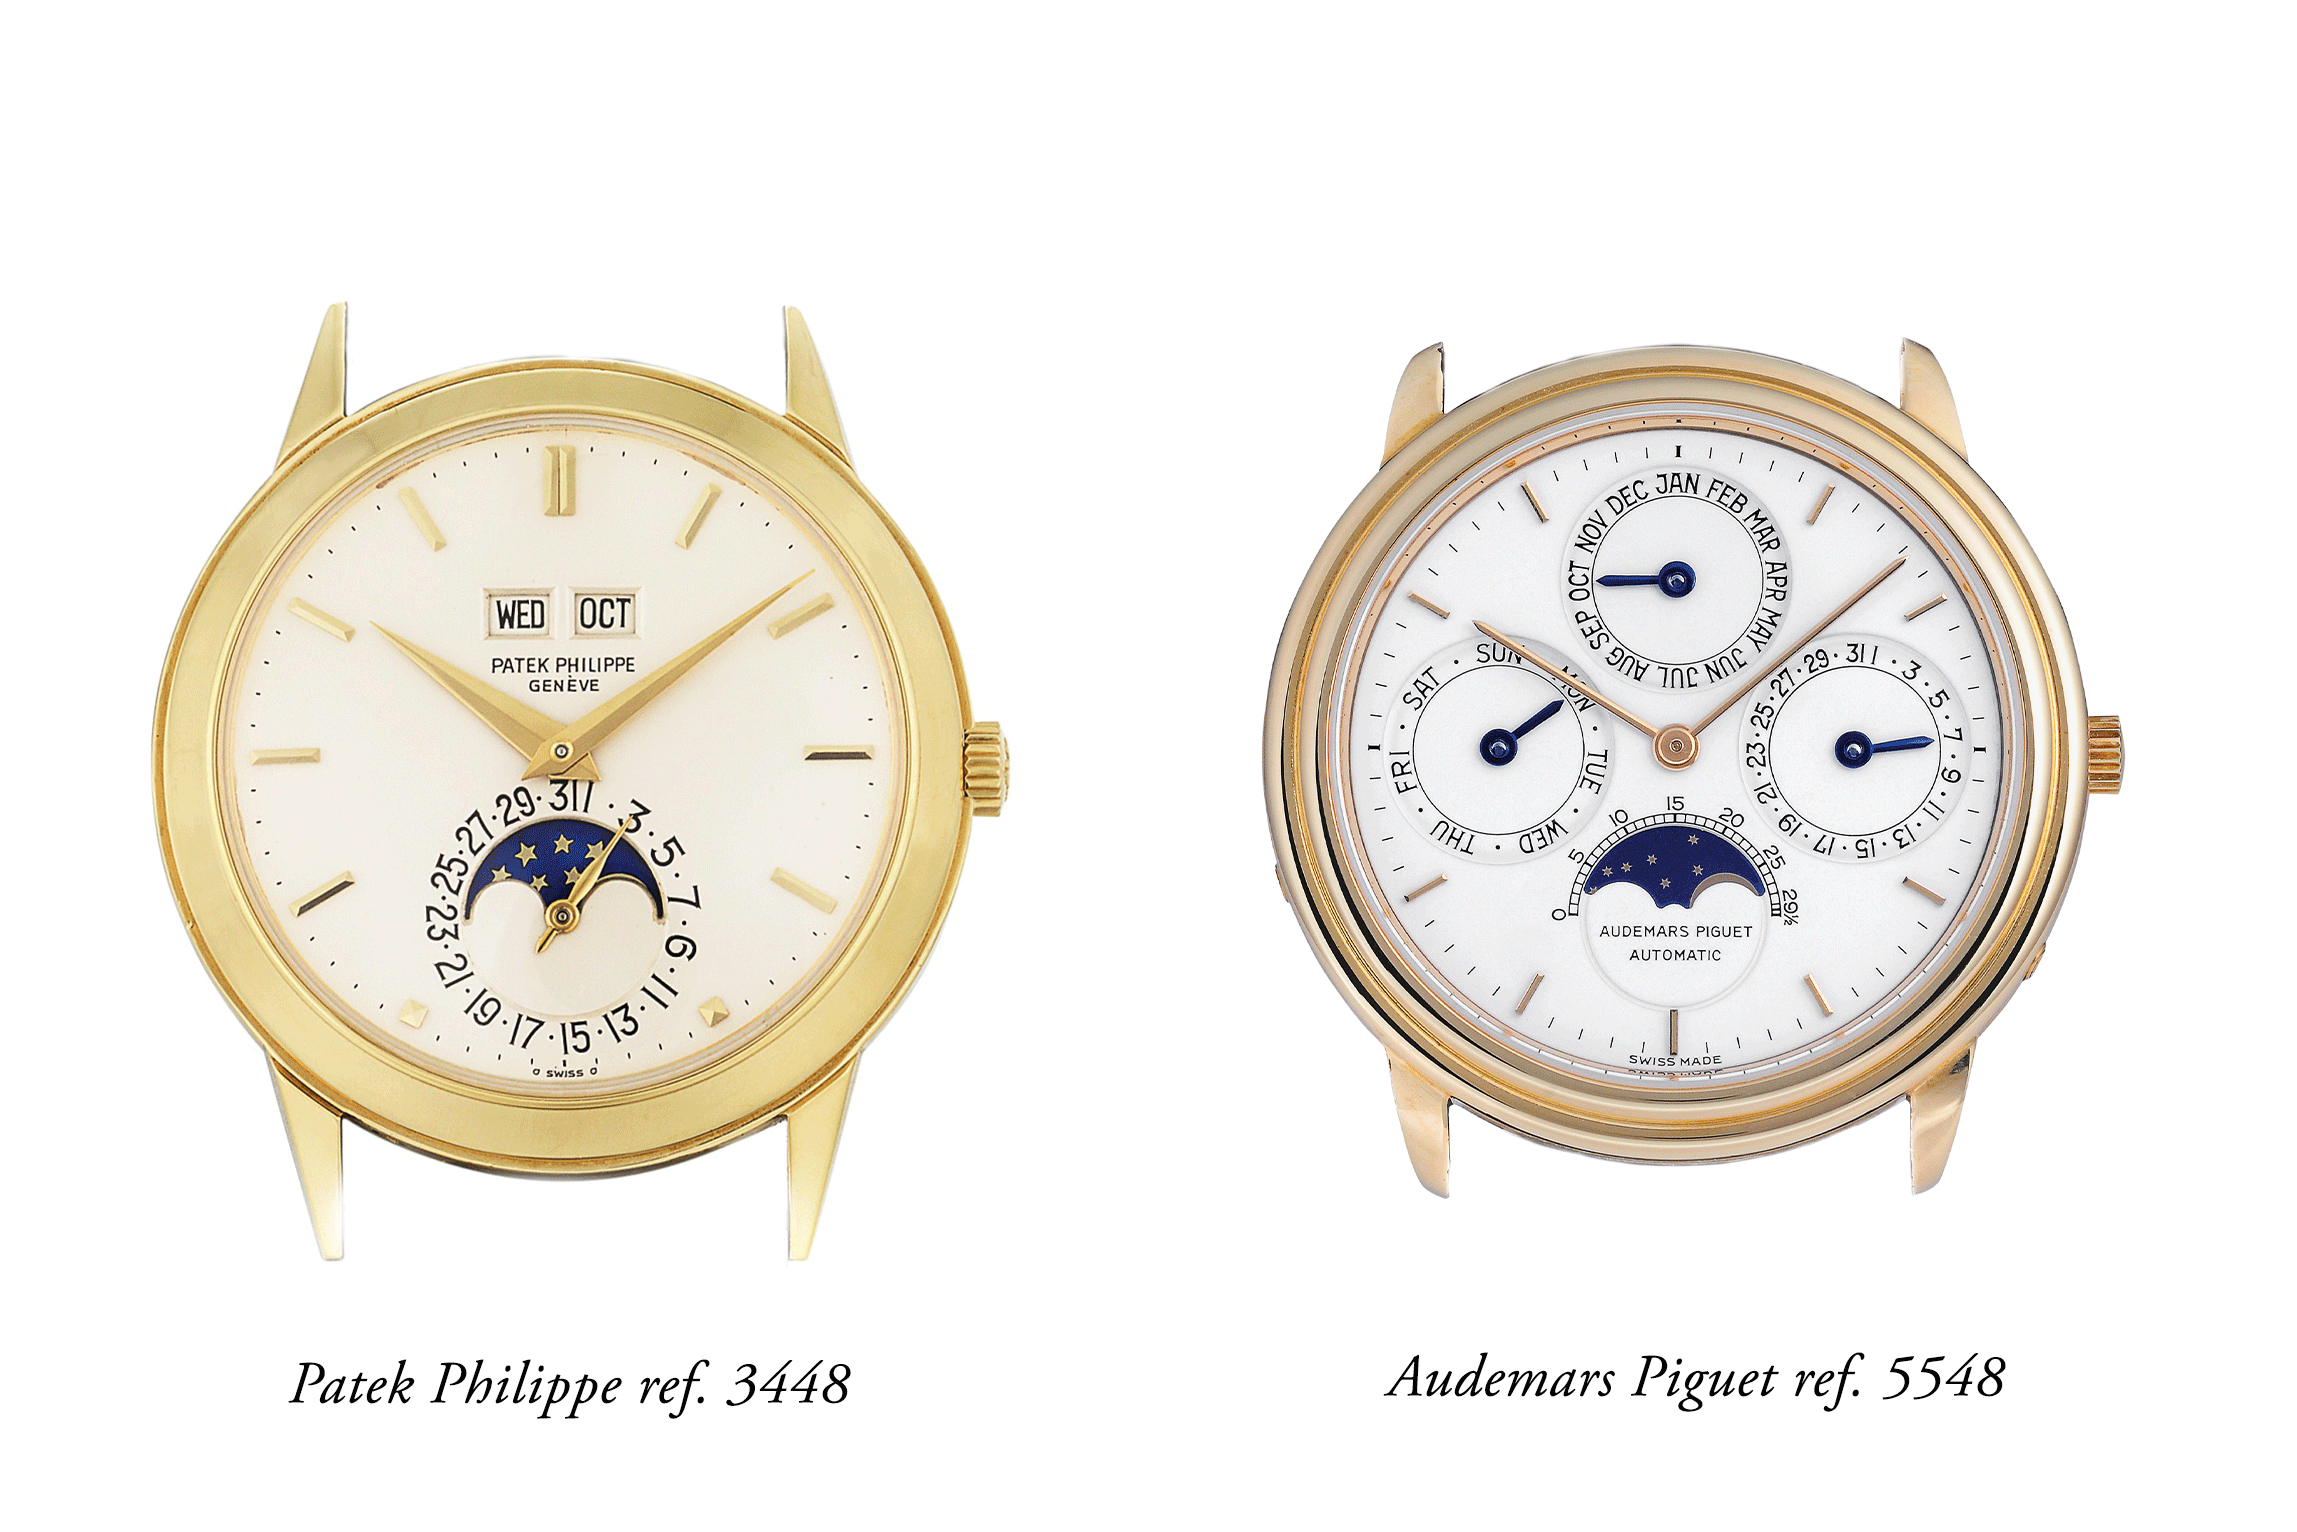 The Patek 3448 was 37mm in diameter but a full 11mm in thickness. The 5548 would be 36mm in diameter (up to 37.5mm in some executions) but measure only 7mm in thickness, which was a huge difference from the 3448.